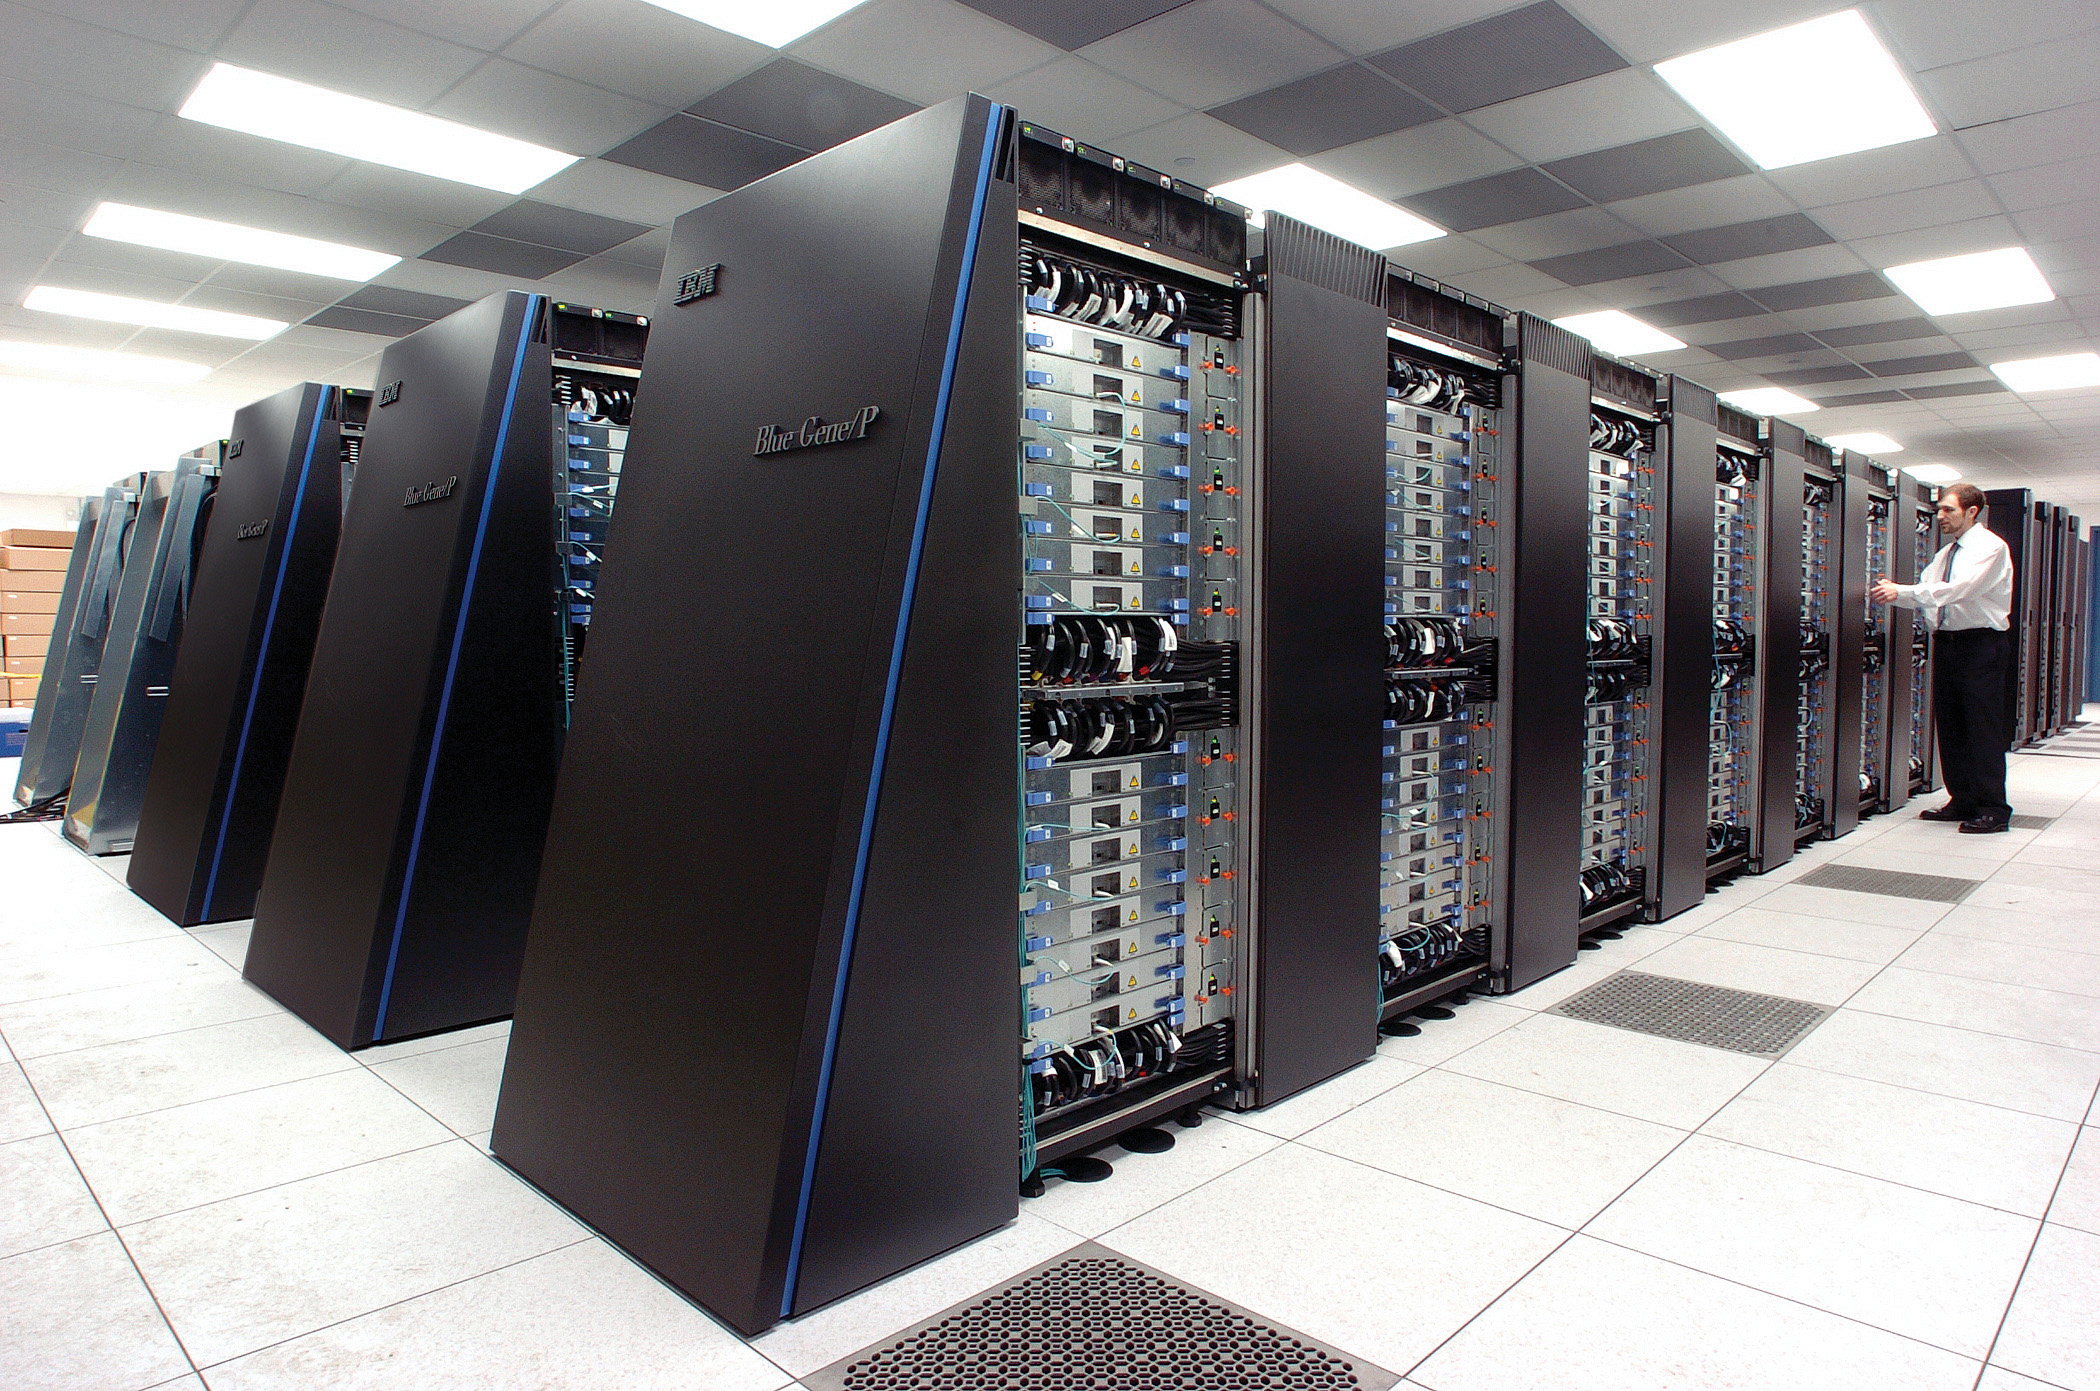 8D0E1ED2 9C4D 33CF 7CF137B7A75452DE source - What To Look For In Data Center Server Racks